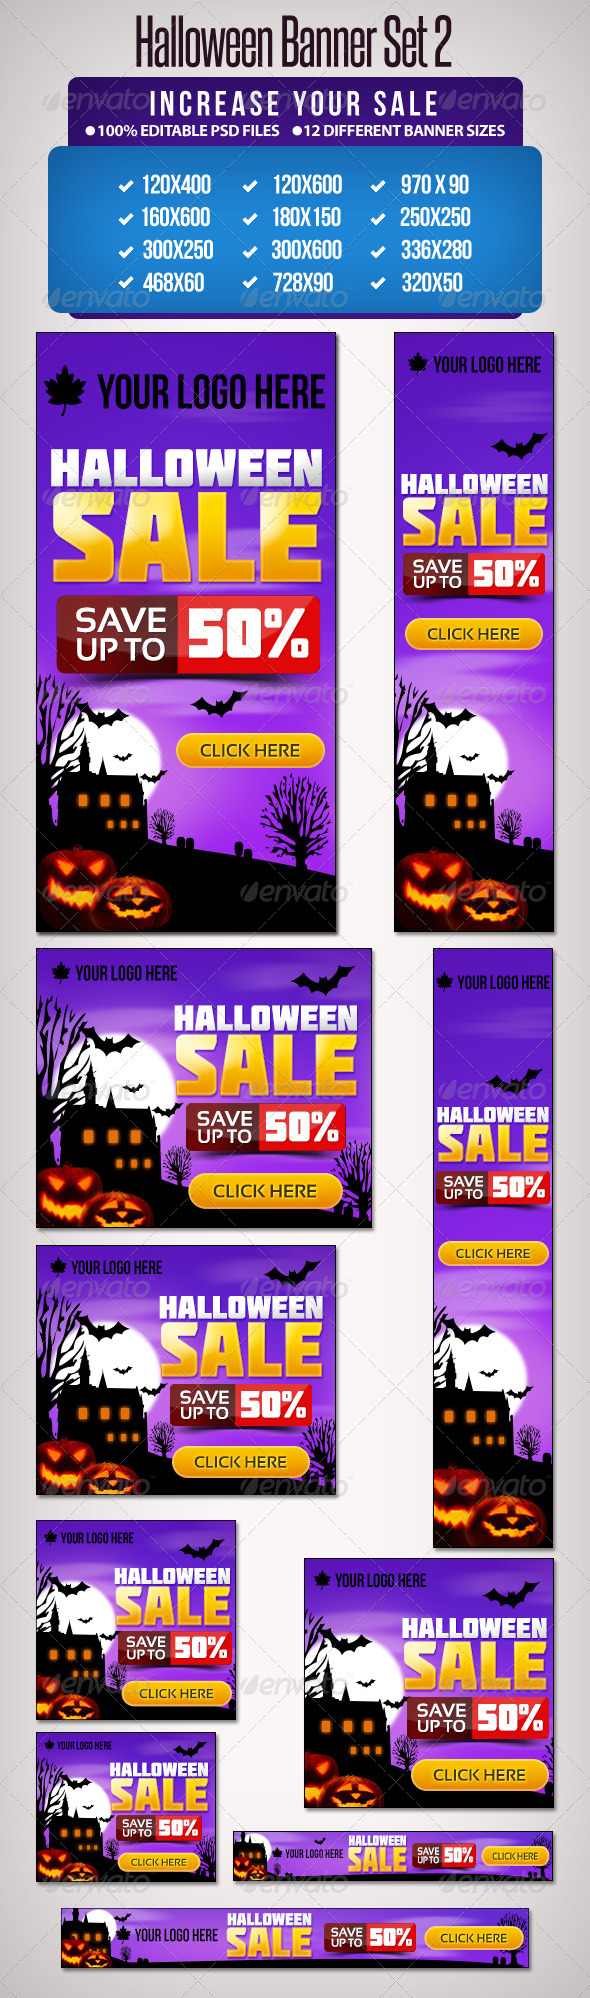 Hallloween Banner Set 2 12 Google Standard Sizes